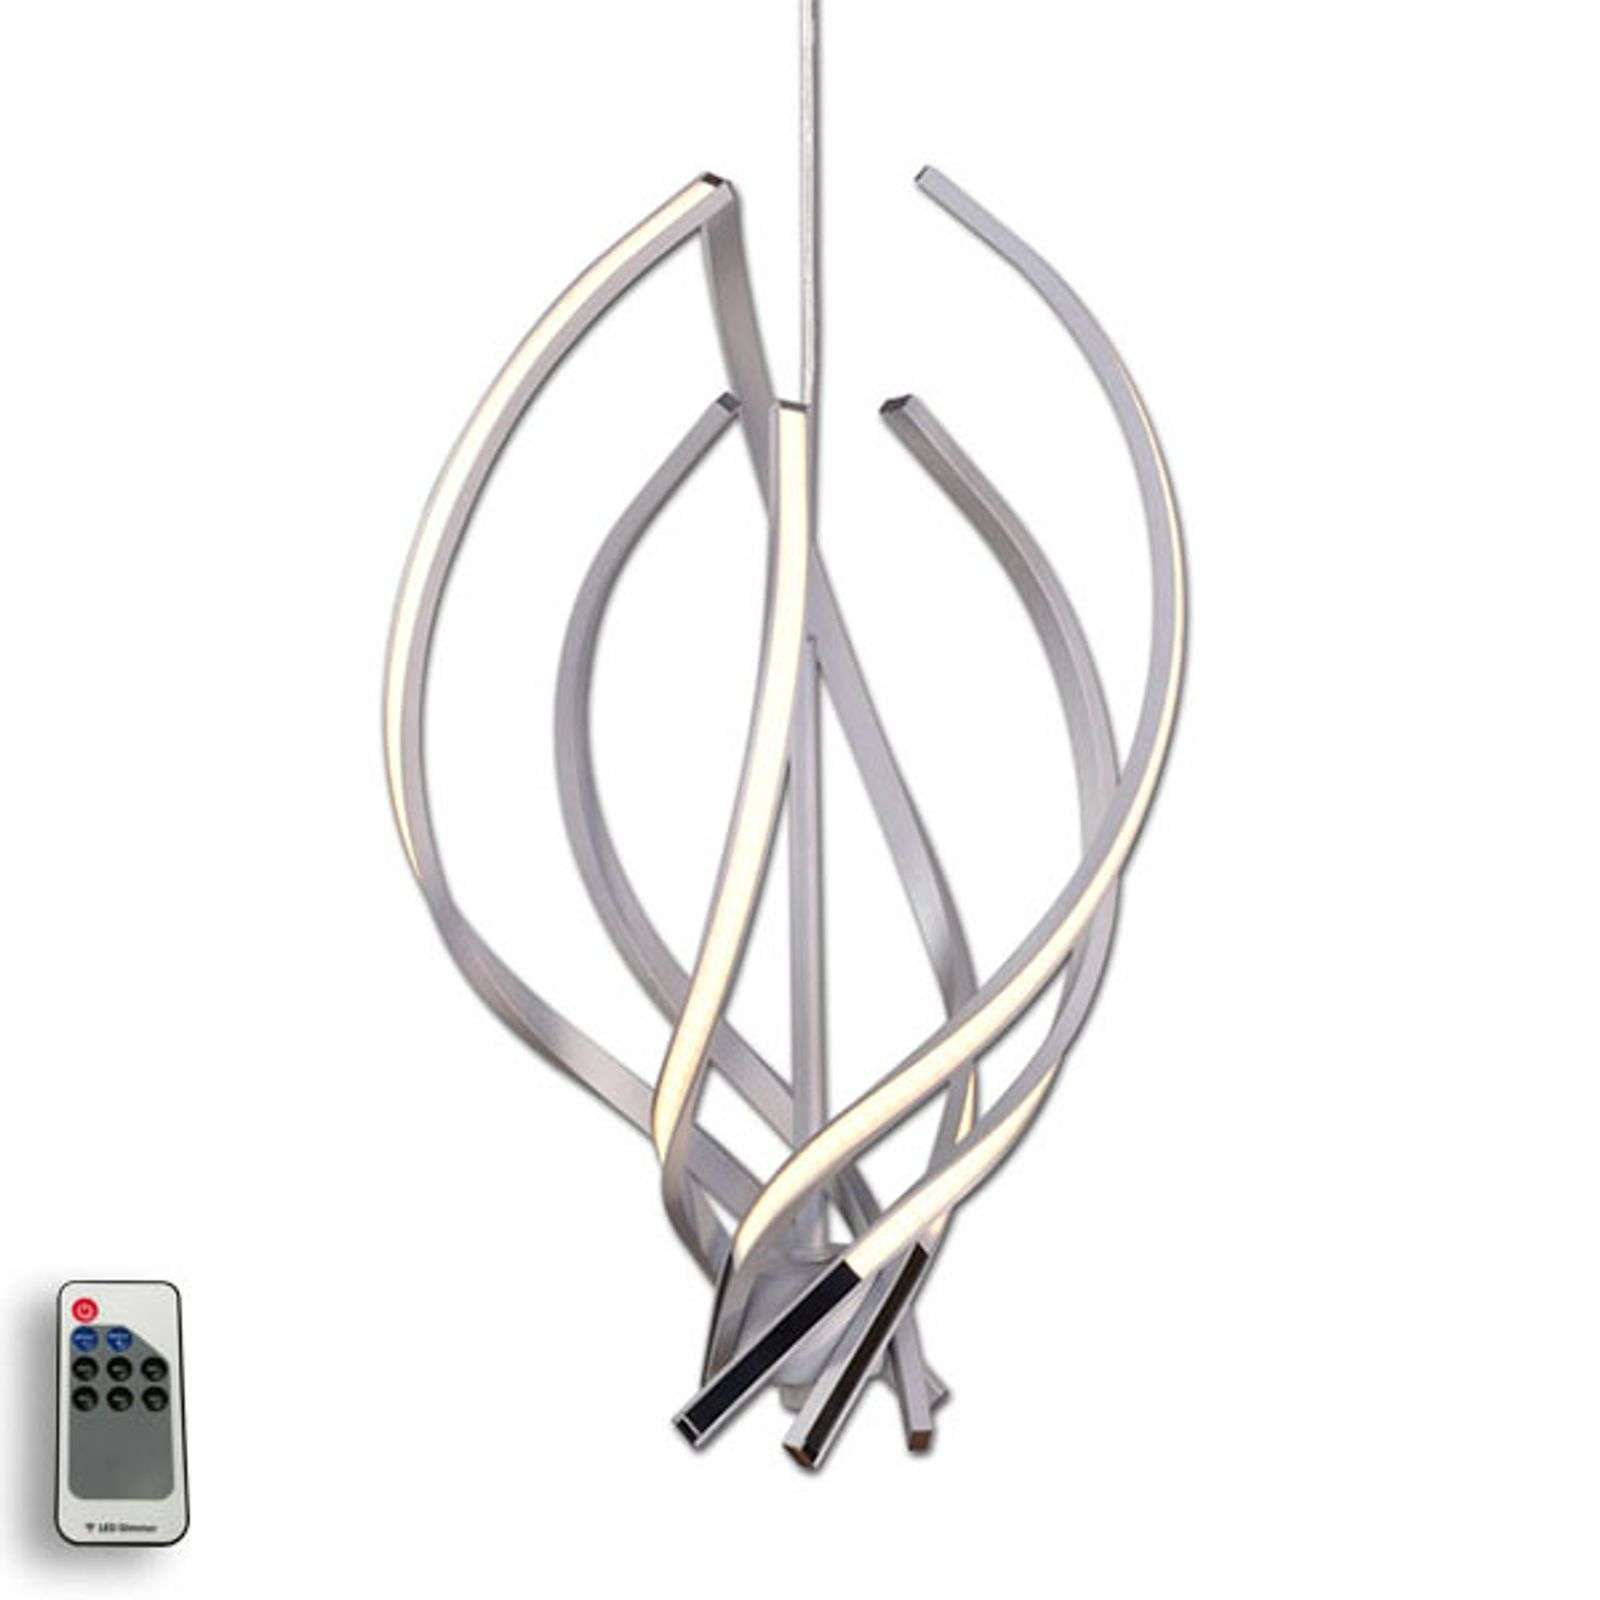 Suspension LED Vigo décorative, aluminium